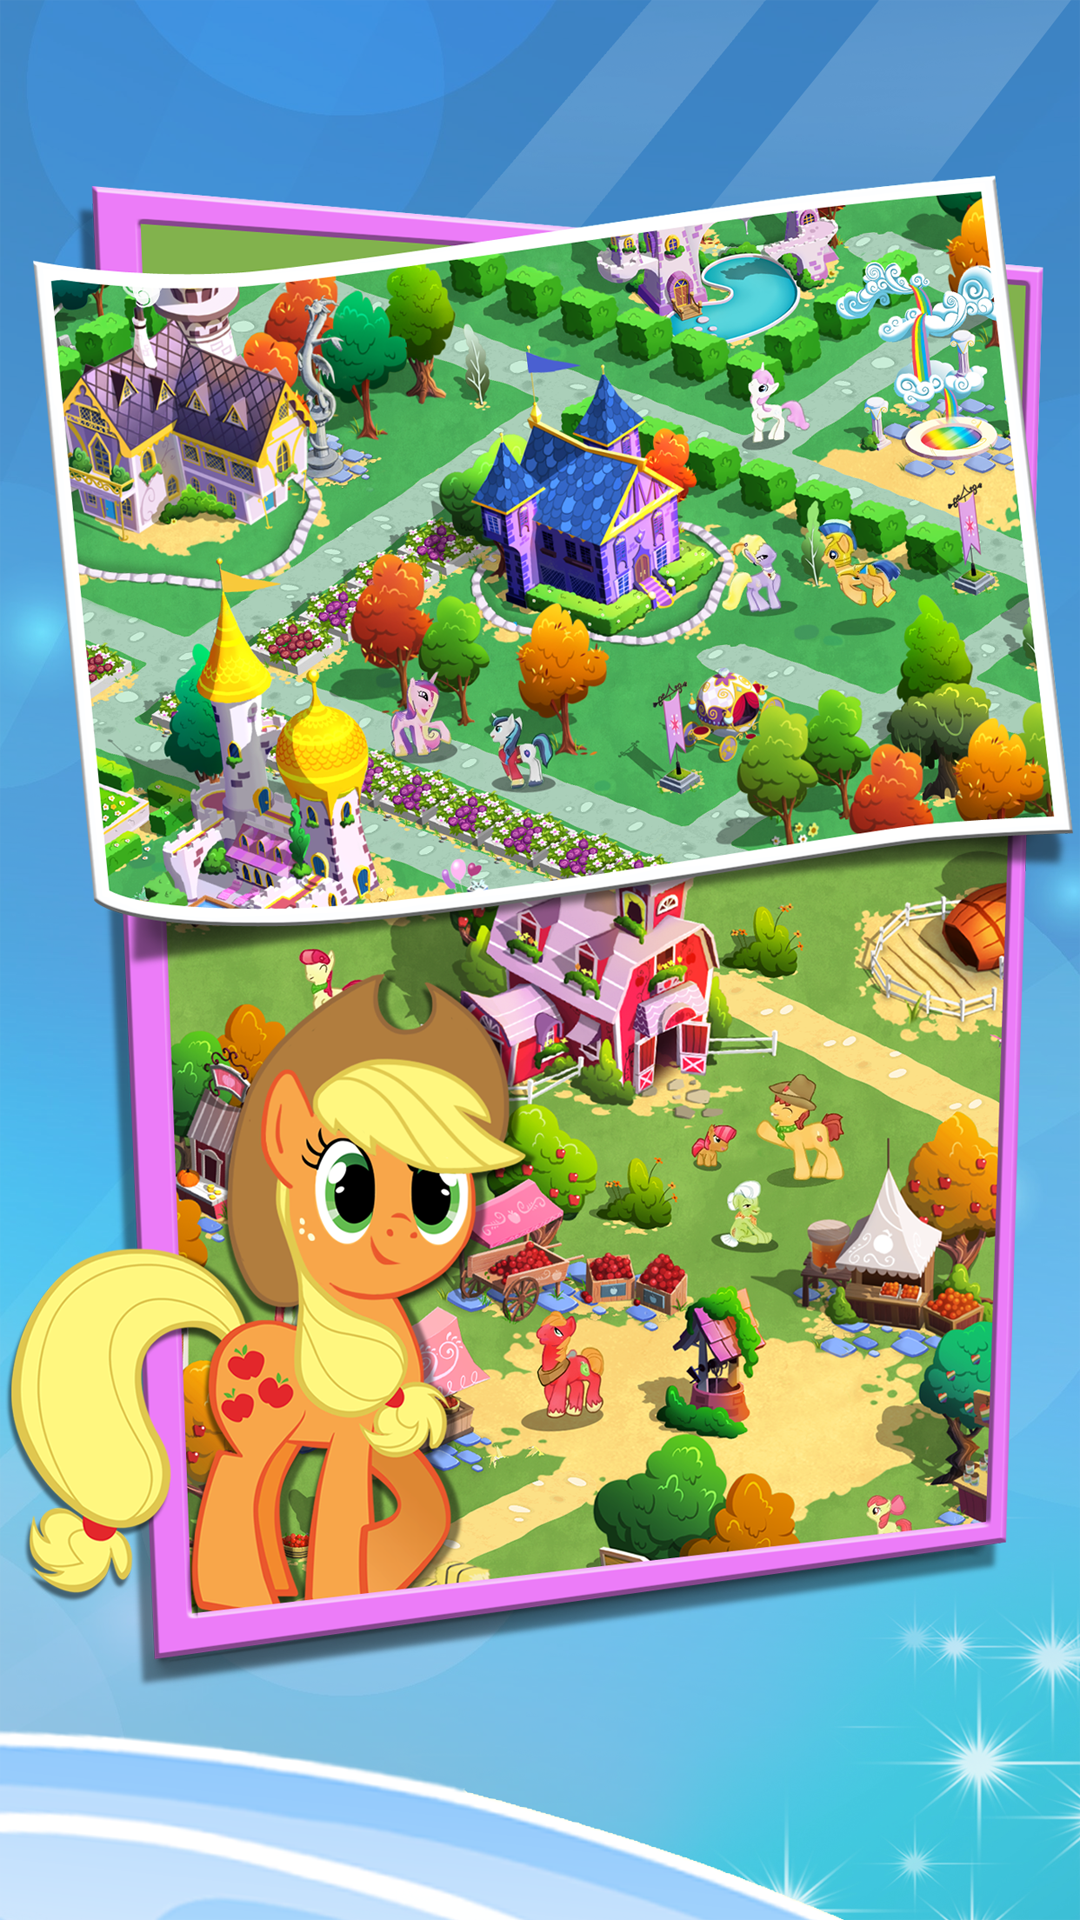 Amazon.com: MY LITTLE PONY - Friendship is Magic: Appstore ...